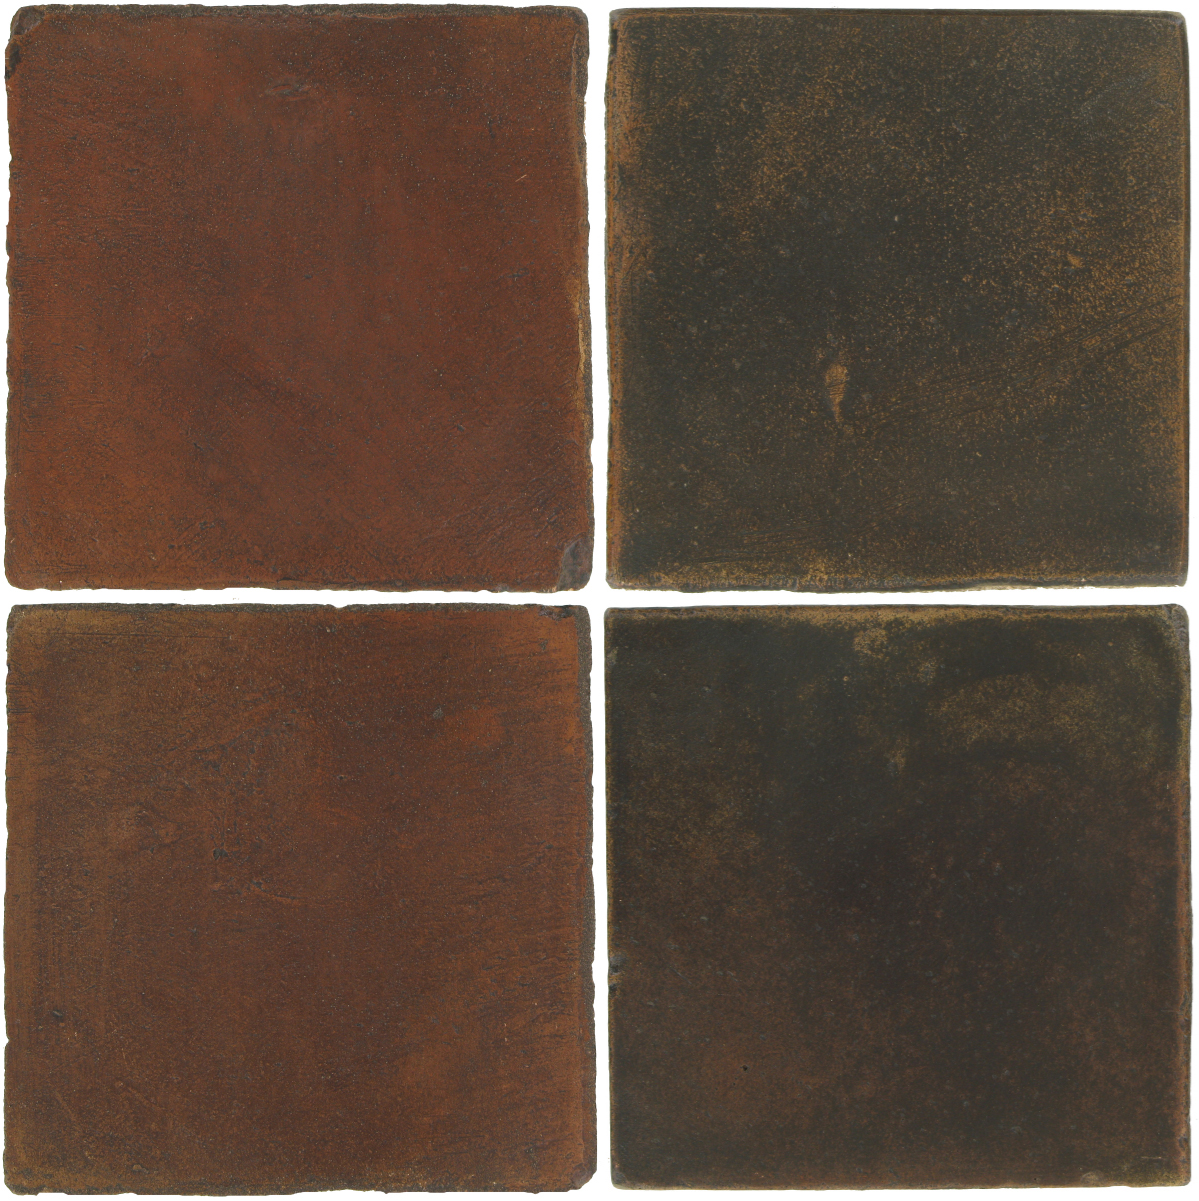 Pedralbes Antique Terracotta  2 Color Combinations  OHS-PSOW Old World + OHS-PSCO Cologne Brown